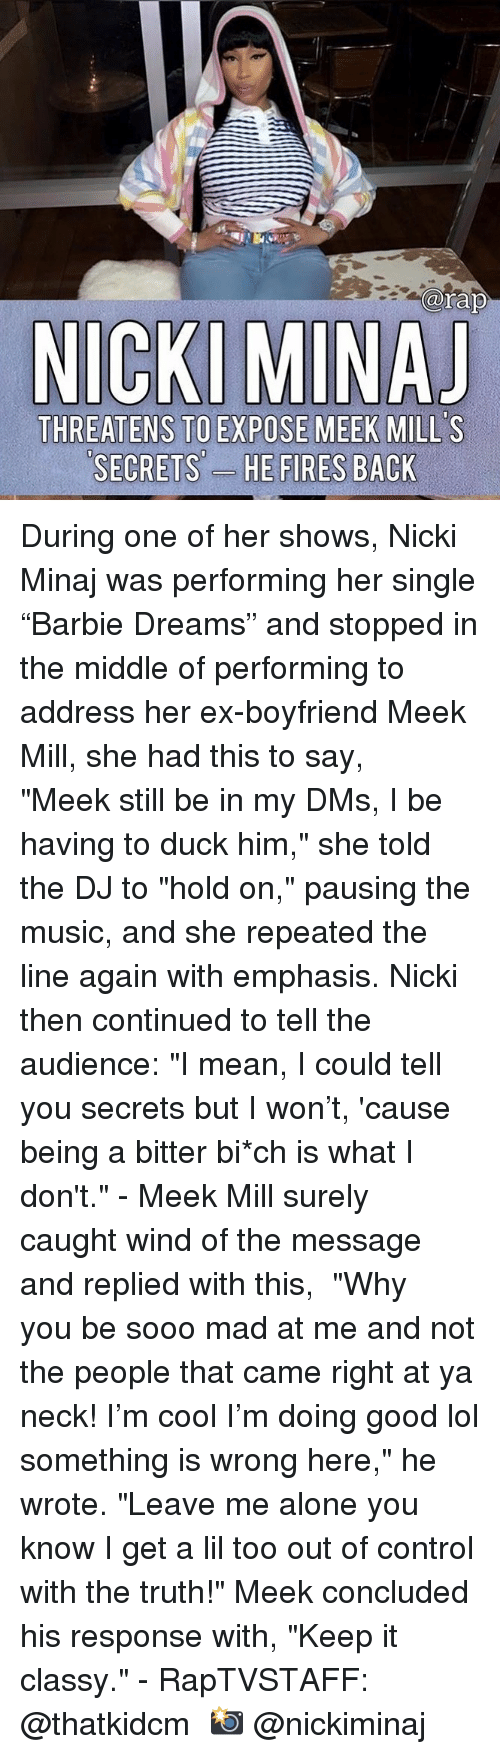 "Being Alone, Lol, and Meek Mill: arap  THREATENS TO EXPOSE MEEK MILL'S  SECRETS'-  ES During one of her shows, Nicki Minaj was performing her single ""Barbie Dreams"" and stopped in the middle of performing to address her ex-boyfriend Meek Mill, she had this to say, ⁣ ⁣ ""Meek still be in my DMs, I be having to duck him,"" she told the DJ to ""hold on,"" pausing the music, and she repeated the line again with emphasis. Nicki then continued to tell the audience: ""I mean, I could tell you secrets but I won't, 'cause being a bitter bi*ch is what I don't.""⁣ -⁣ Meek Mill surely caught wind of the message and replied with this,⁣ ⁣ ""Why you be sooo mad at me and not the people that came right at ya neck! I'm cool I'm doing good lol something is wrong here,"" he wrote. ""Leave me alone you know I get a lil too out of control with the truth!"" Meek concluded his response with, ""Keep it classy.""⁣ -⁣ RapTVSTAFF: @thatkidcm⁣ 📸 @nickiminaj"